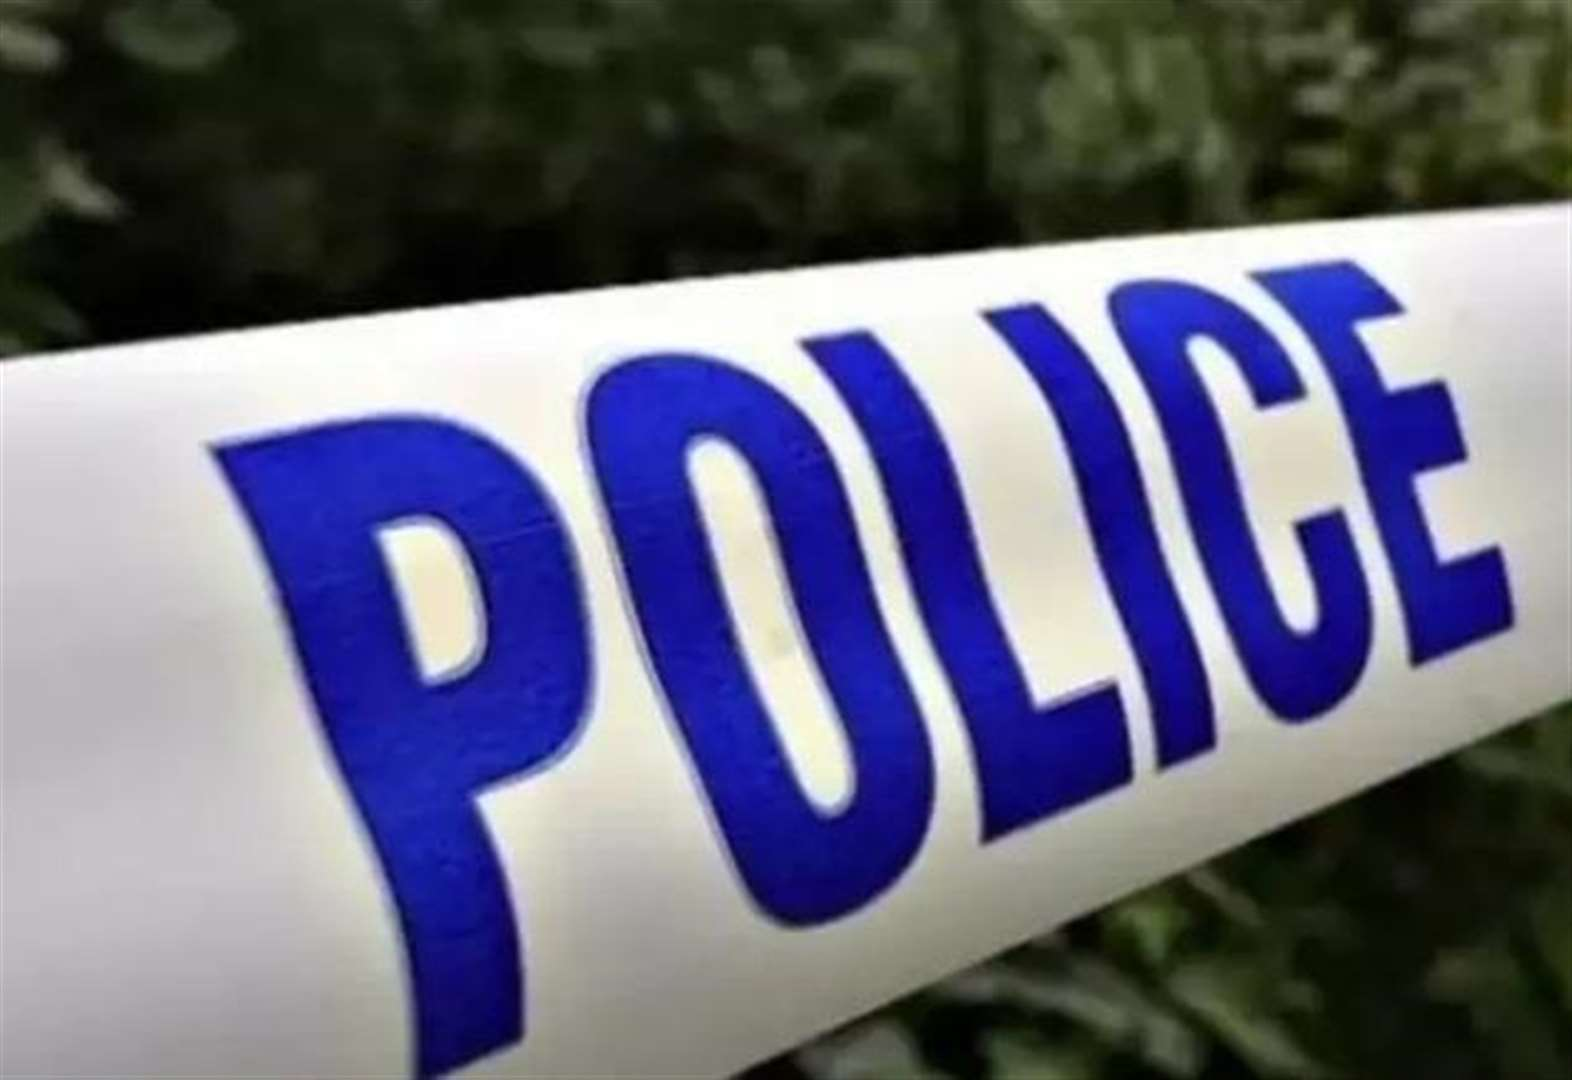 Body of man found in water in Thetford